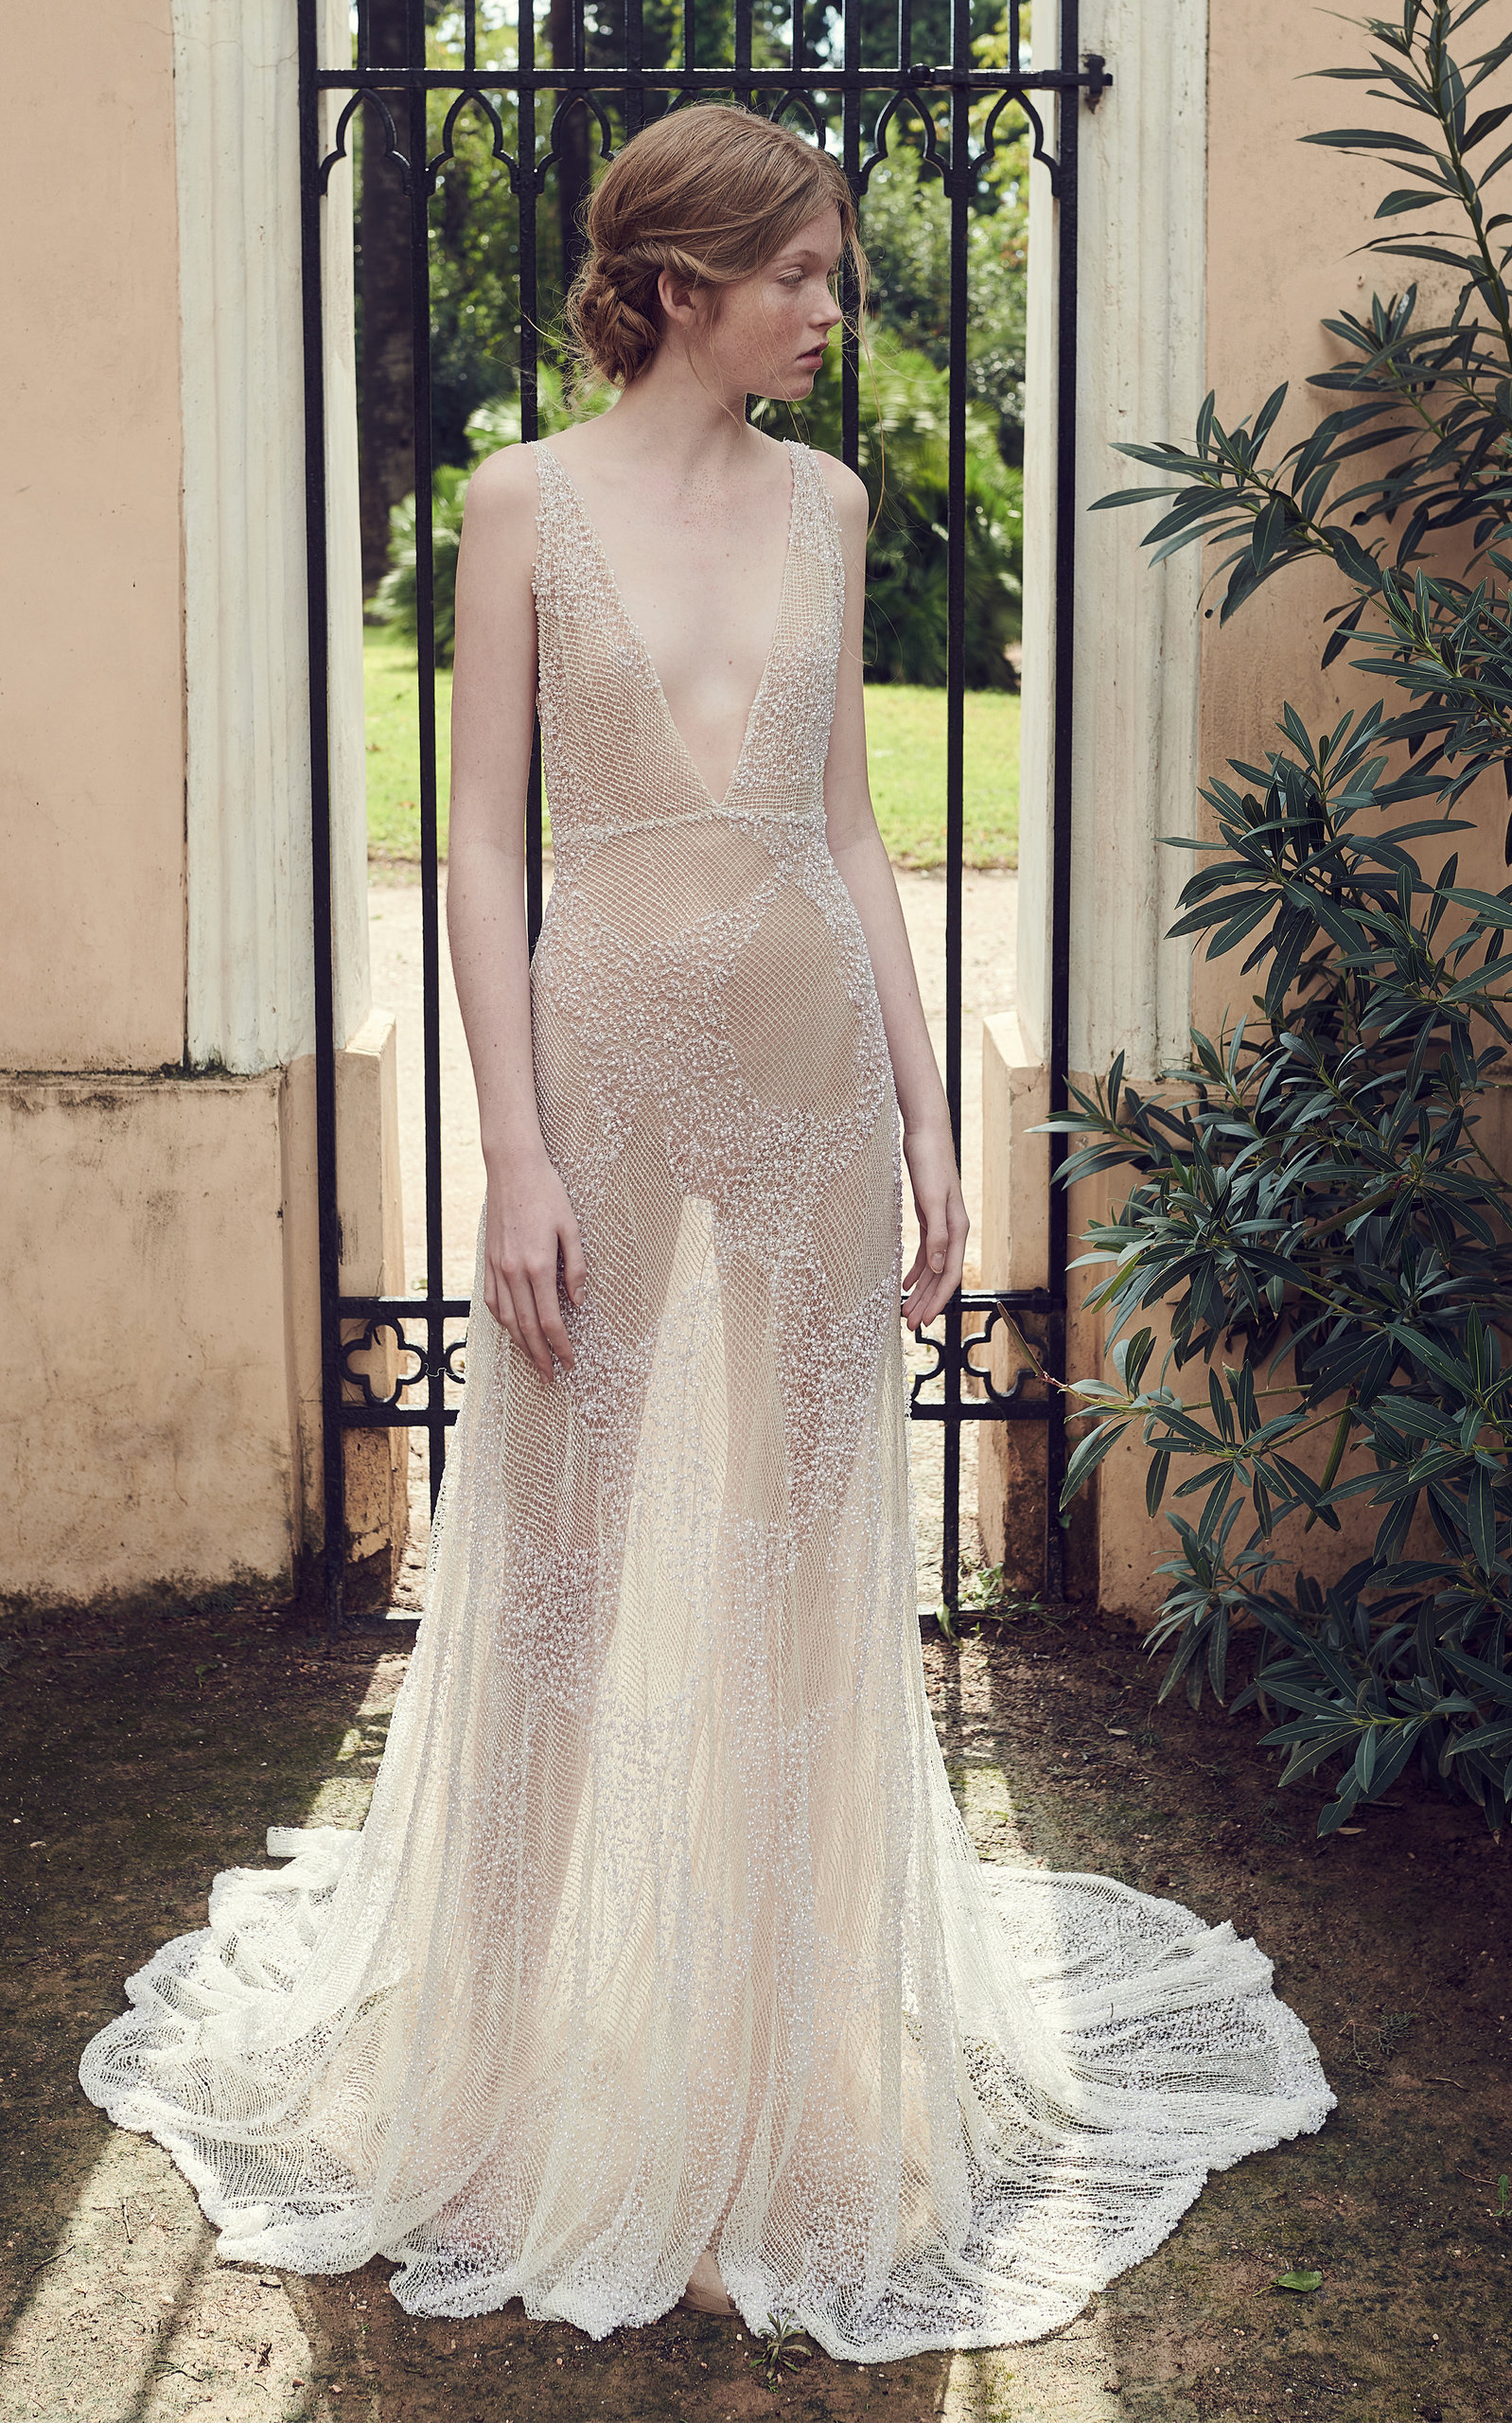 COSTARELLOS BRIDAL Beaded Tulle Plunging V-Neck Gown in Neutral